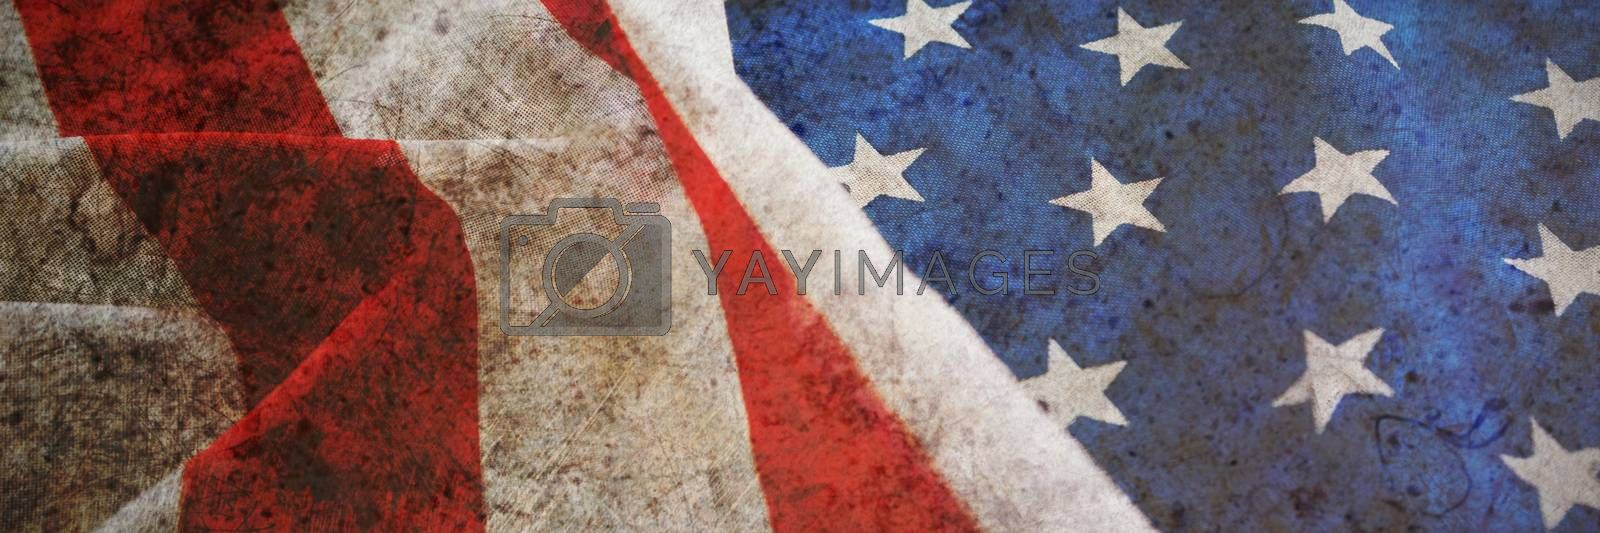 Full frame close-up of crumbled American flag